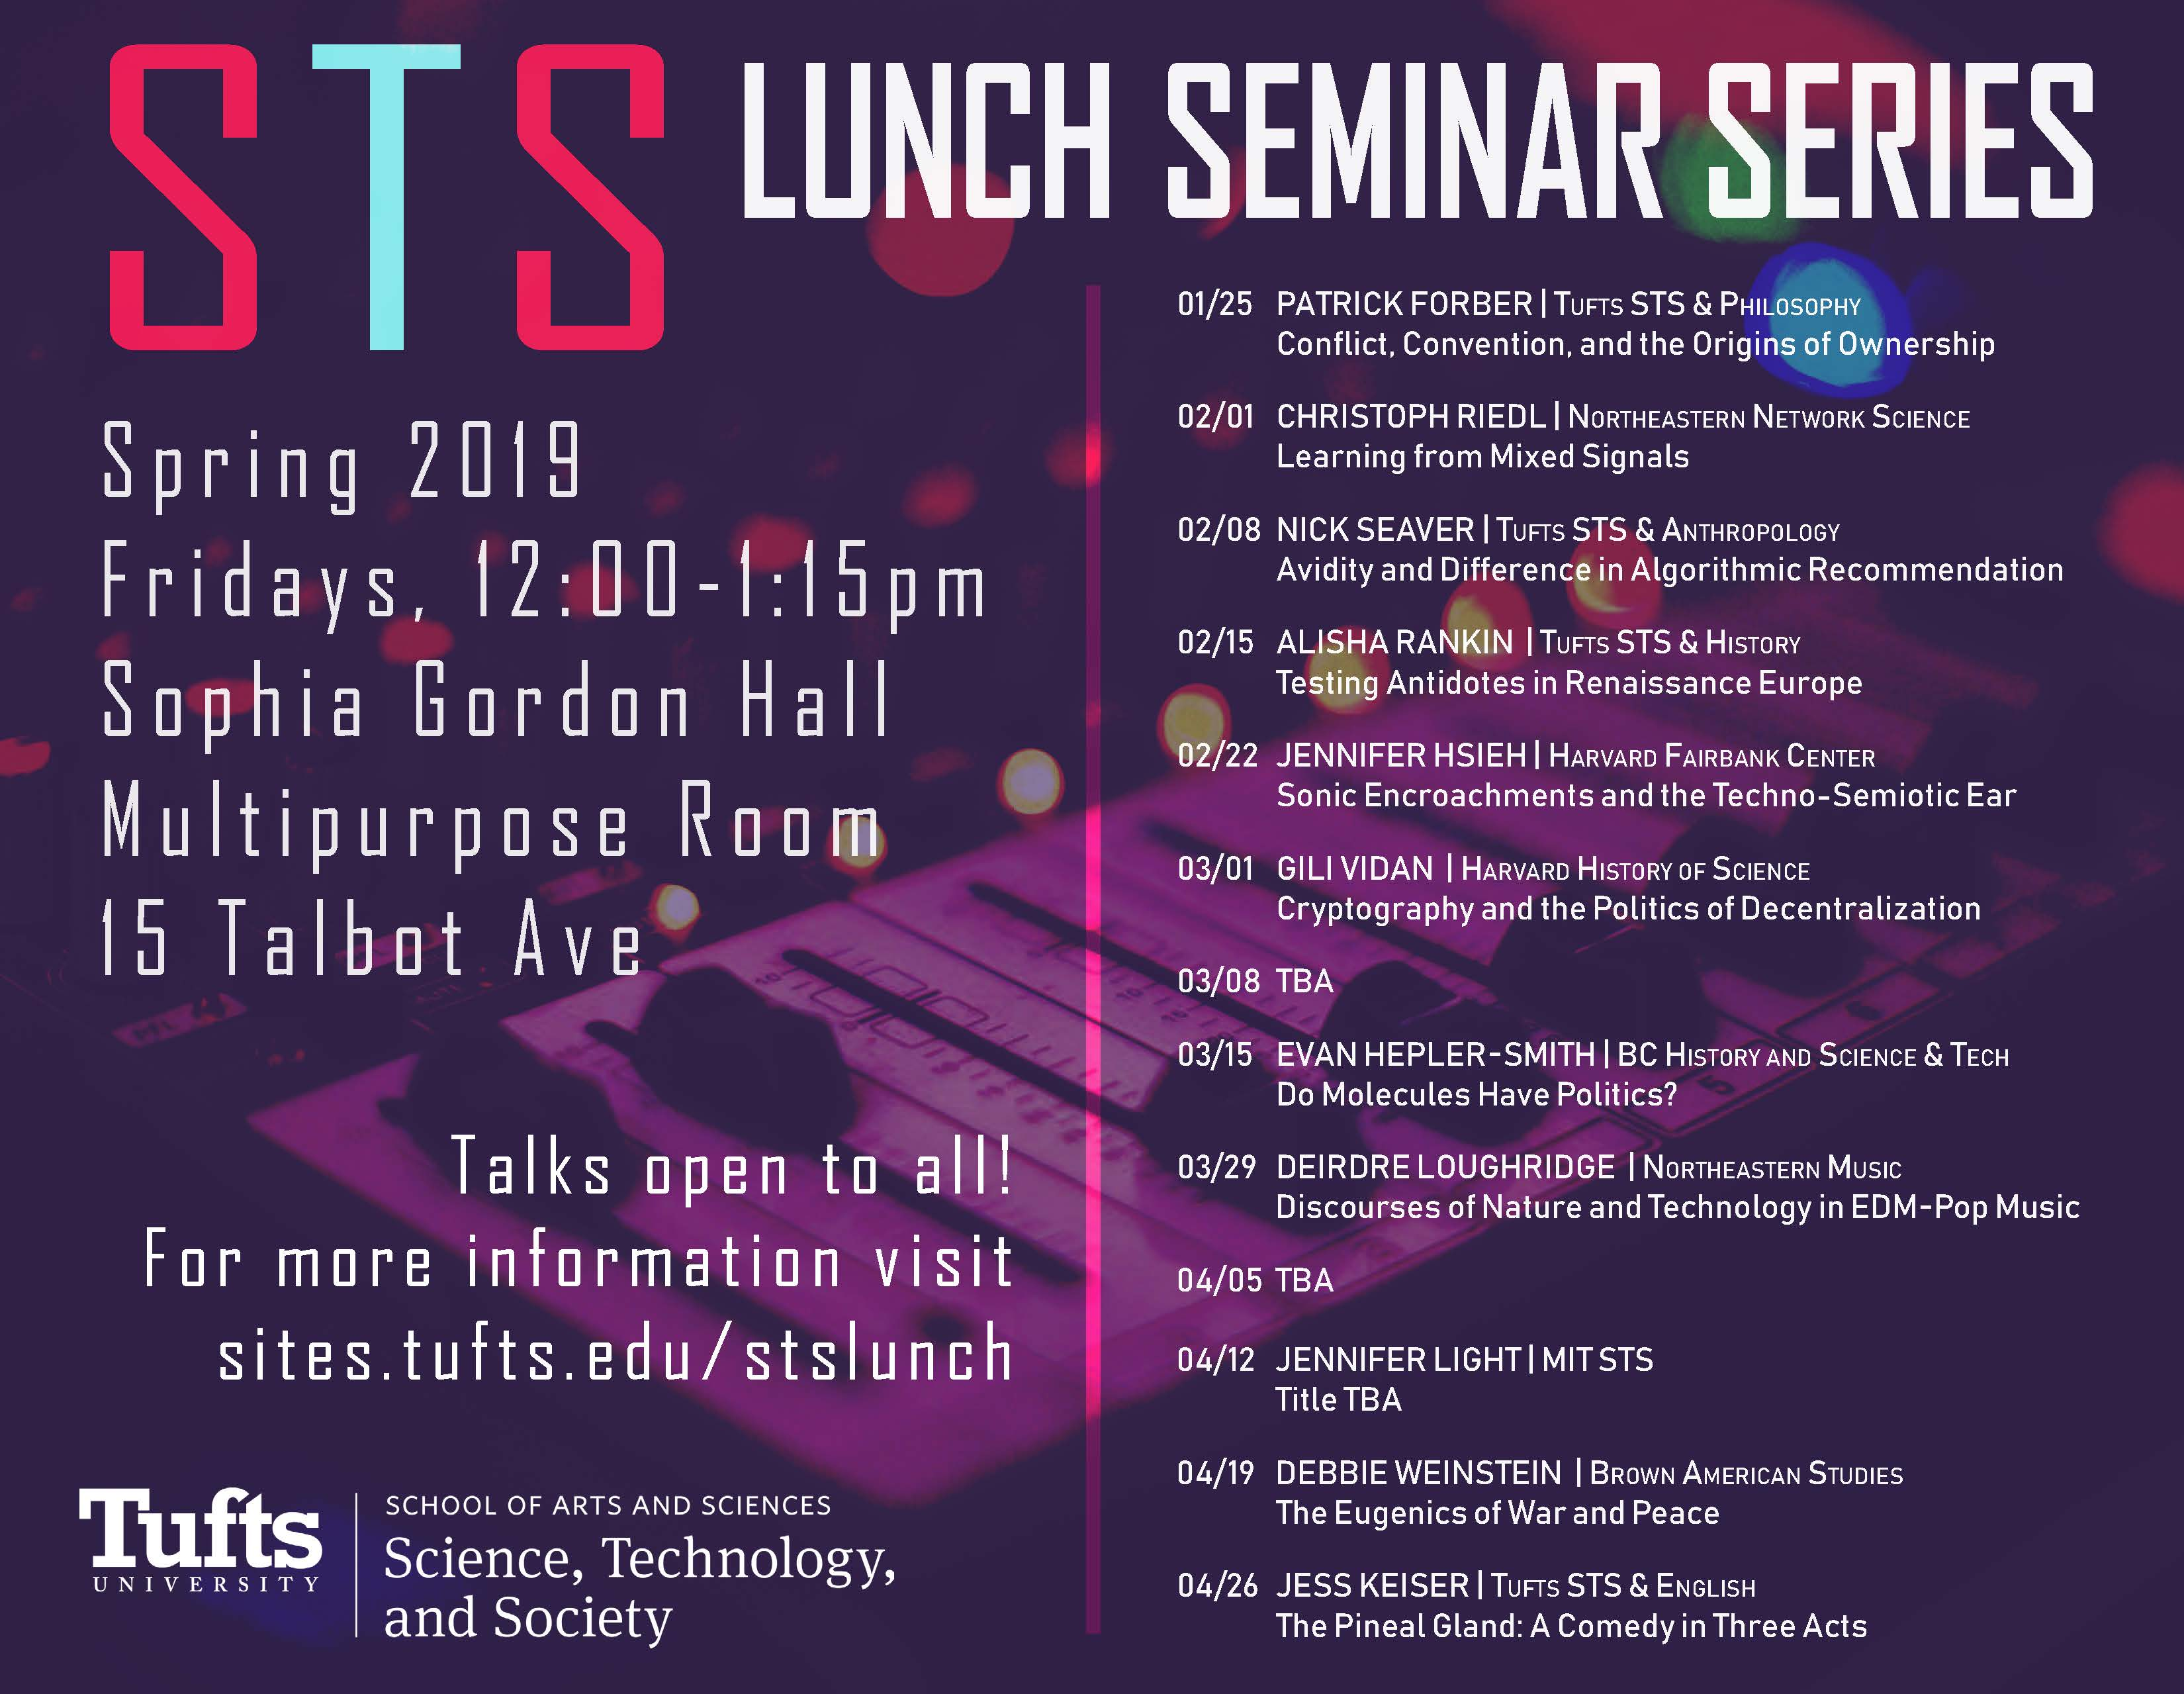 STS Lunch Seminar Series flyer